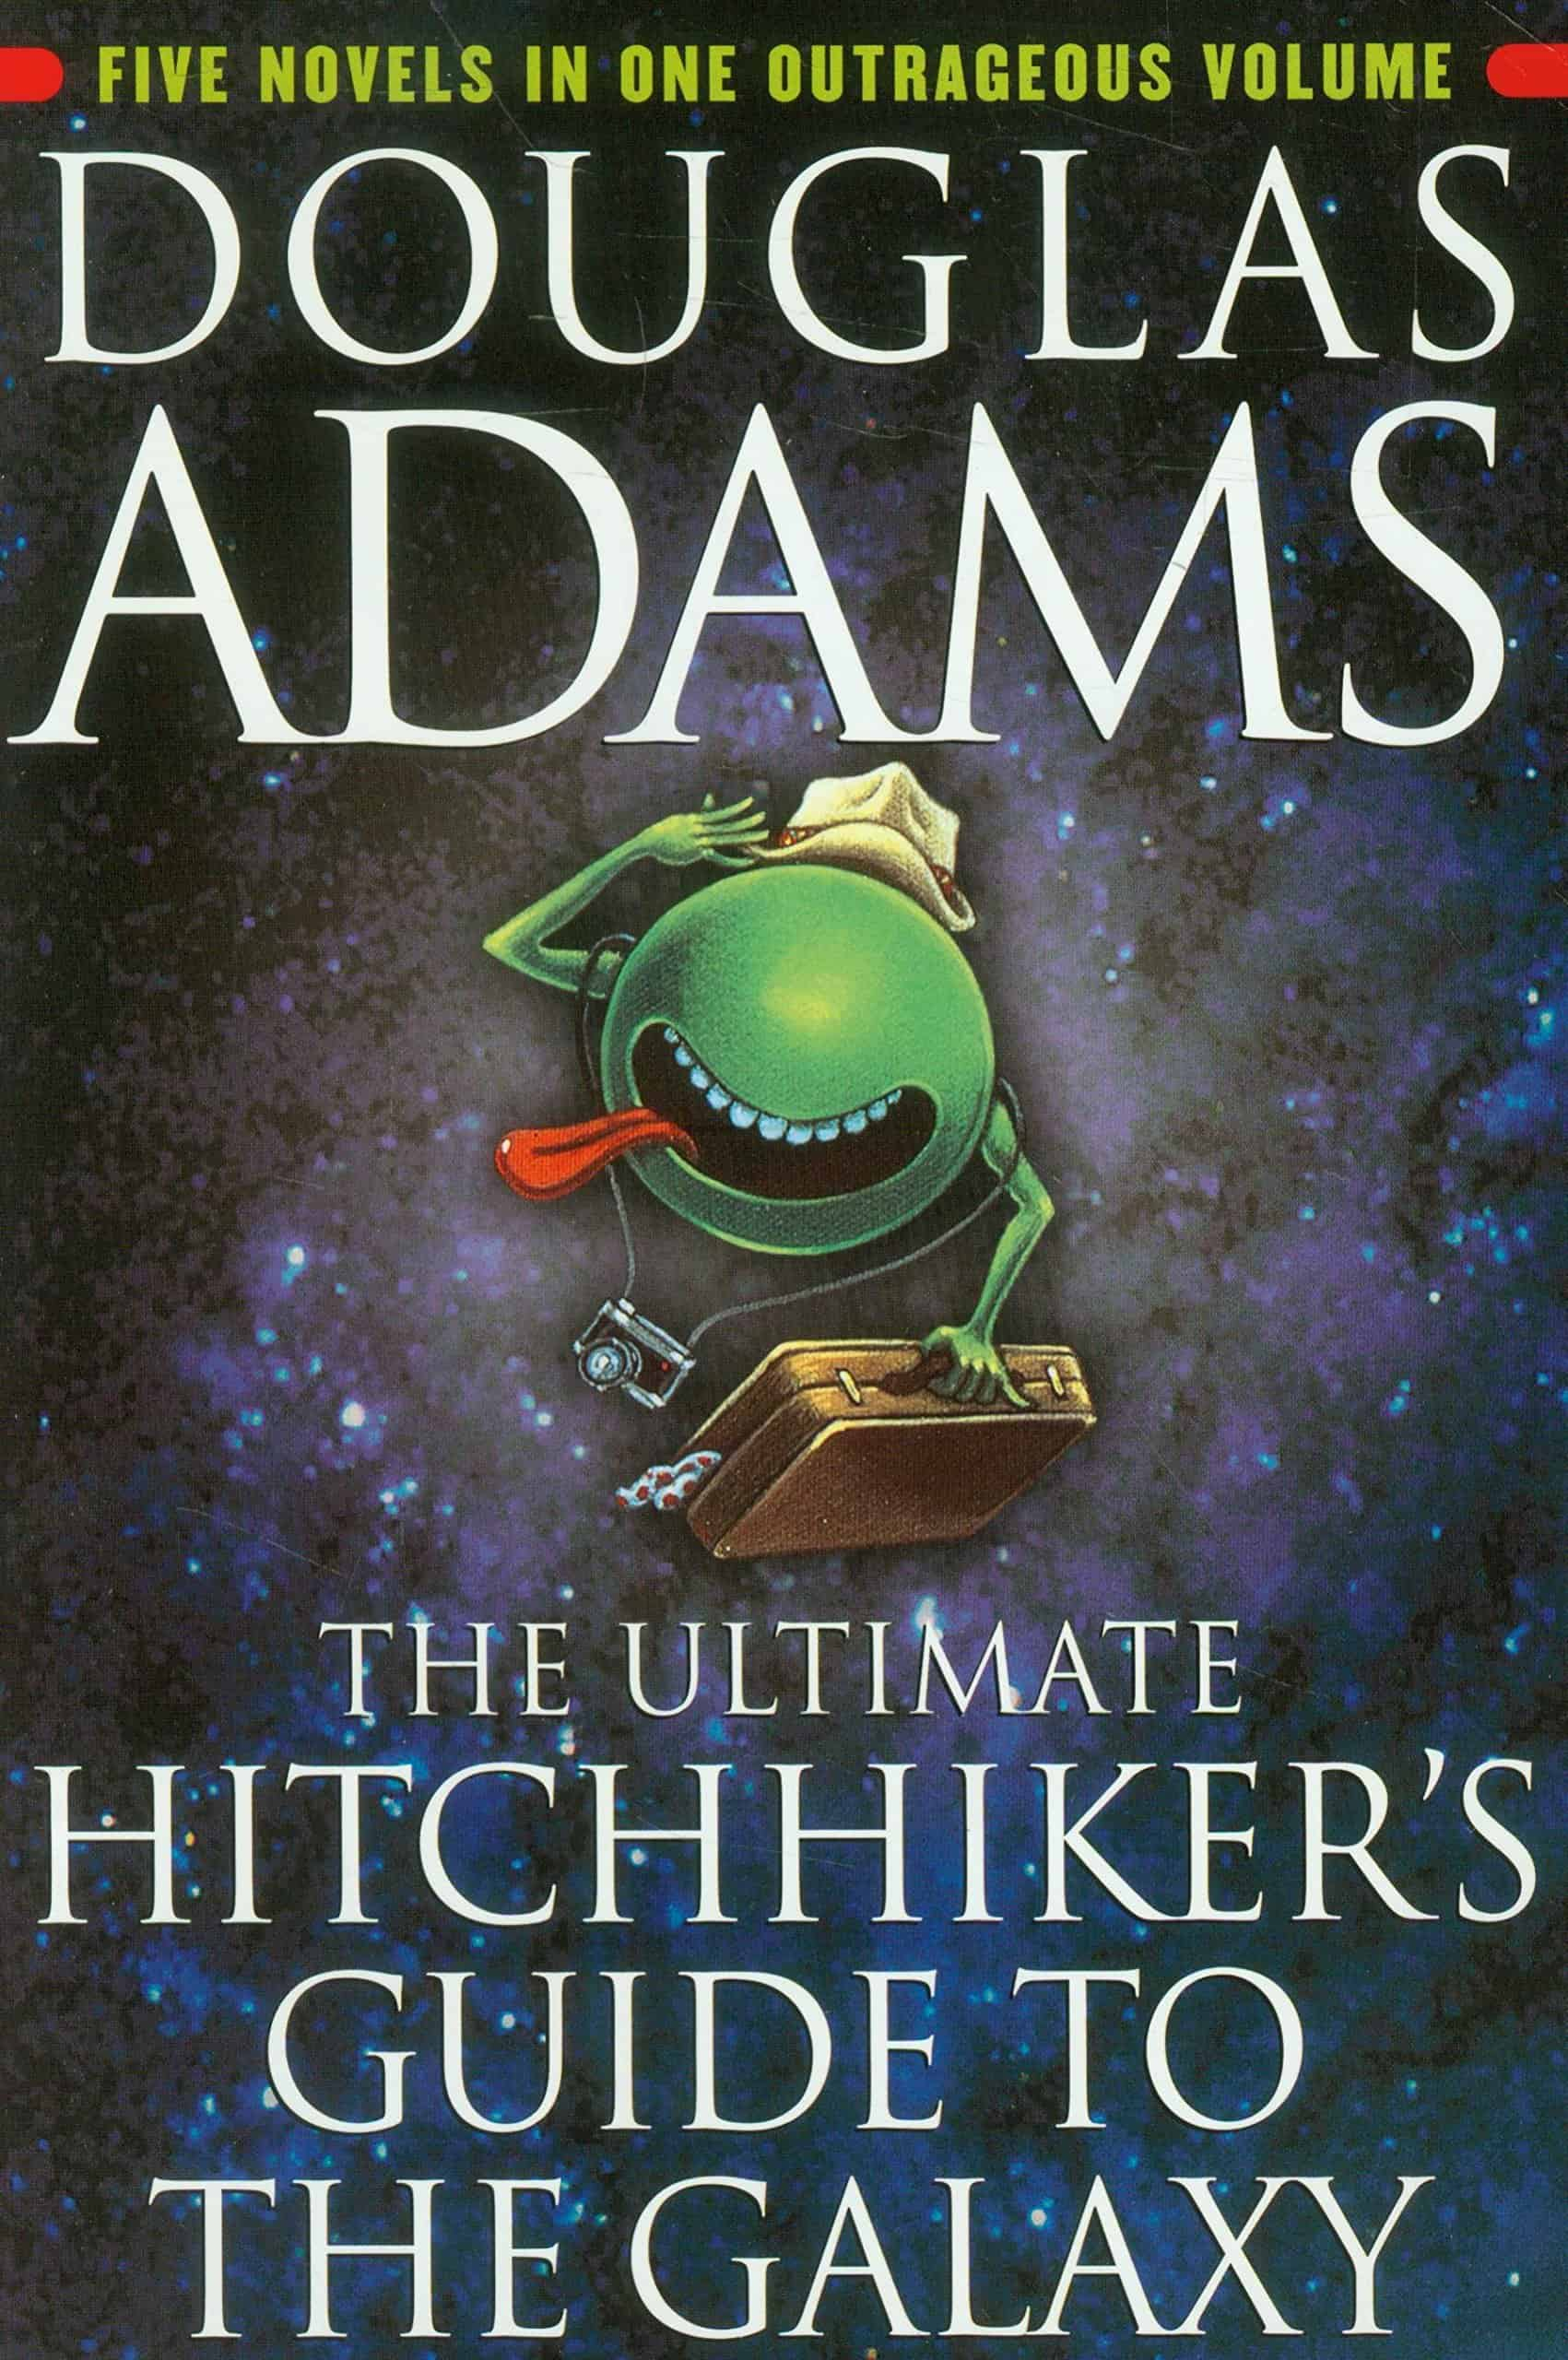 Hitchhiker's Guide to the Galaxy Books to Read